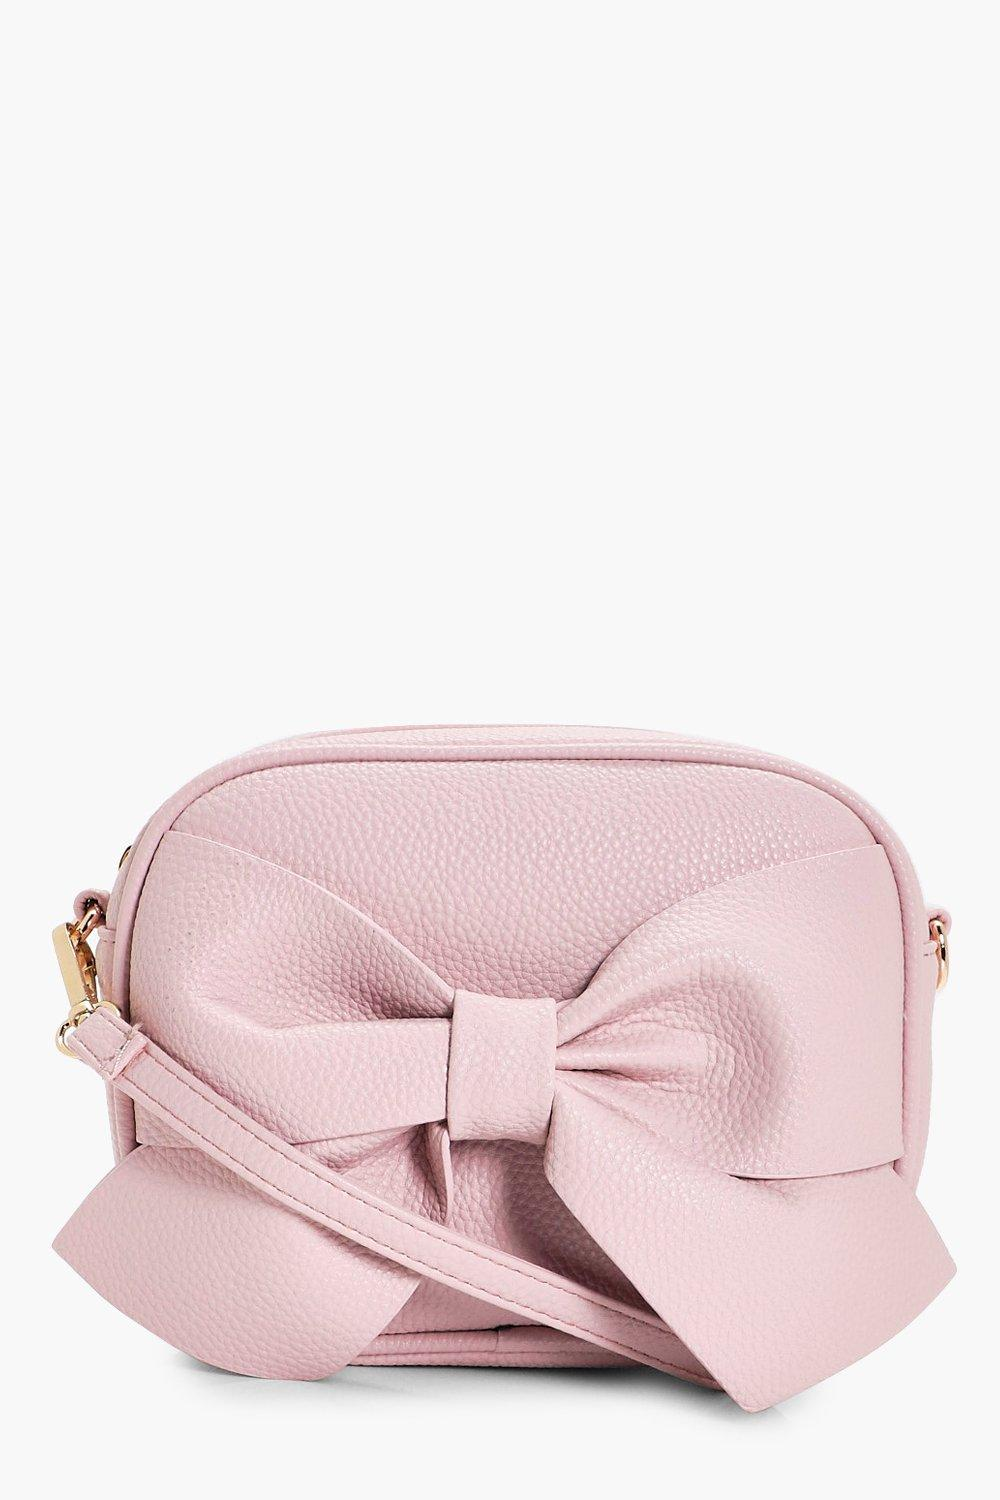 Bow Front Cross Body Bag - blush - Millie Bow Fron